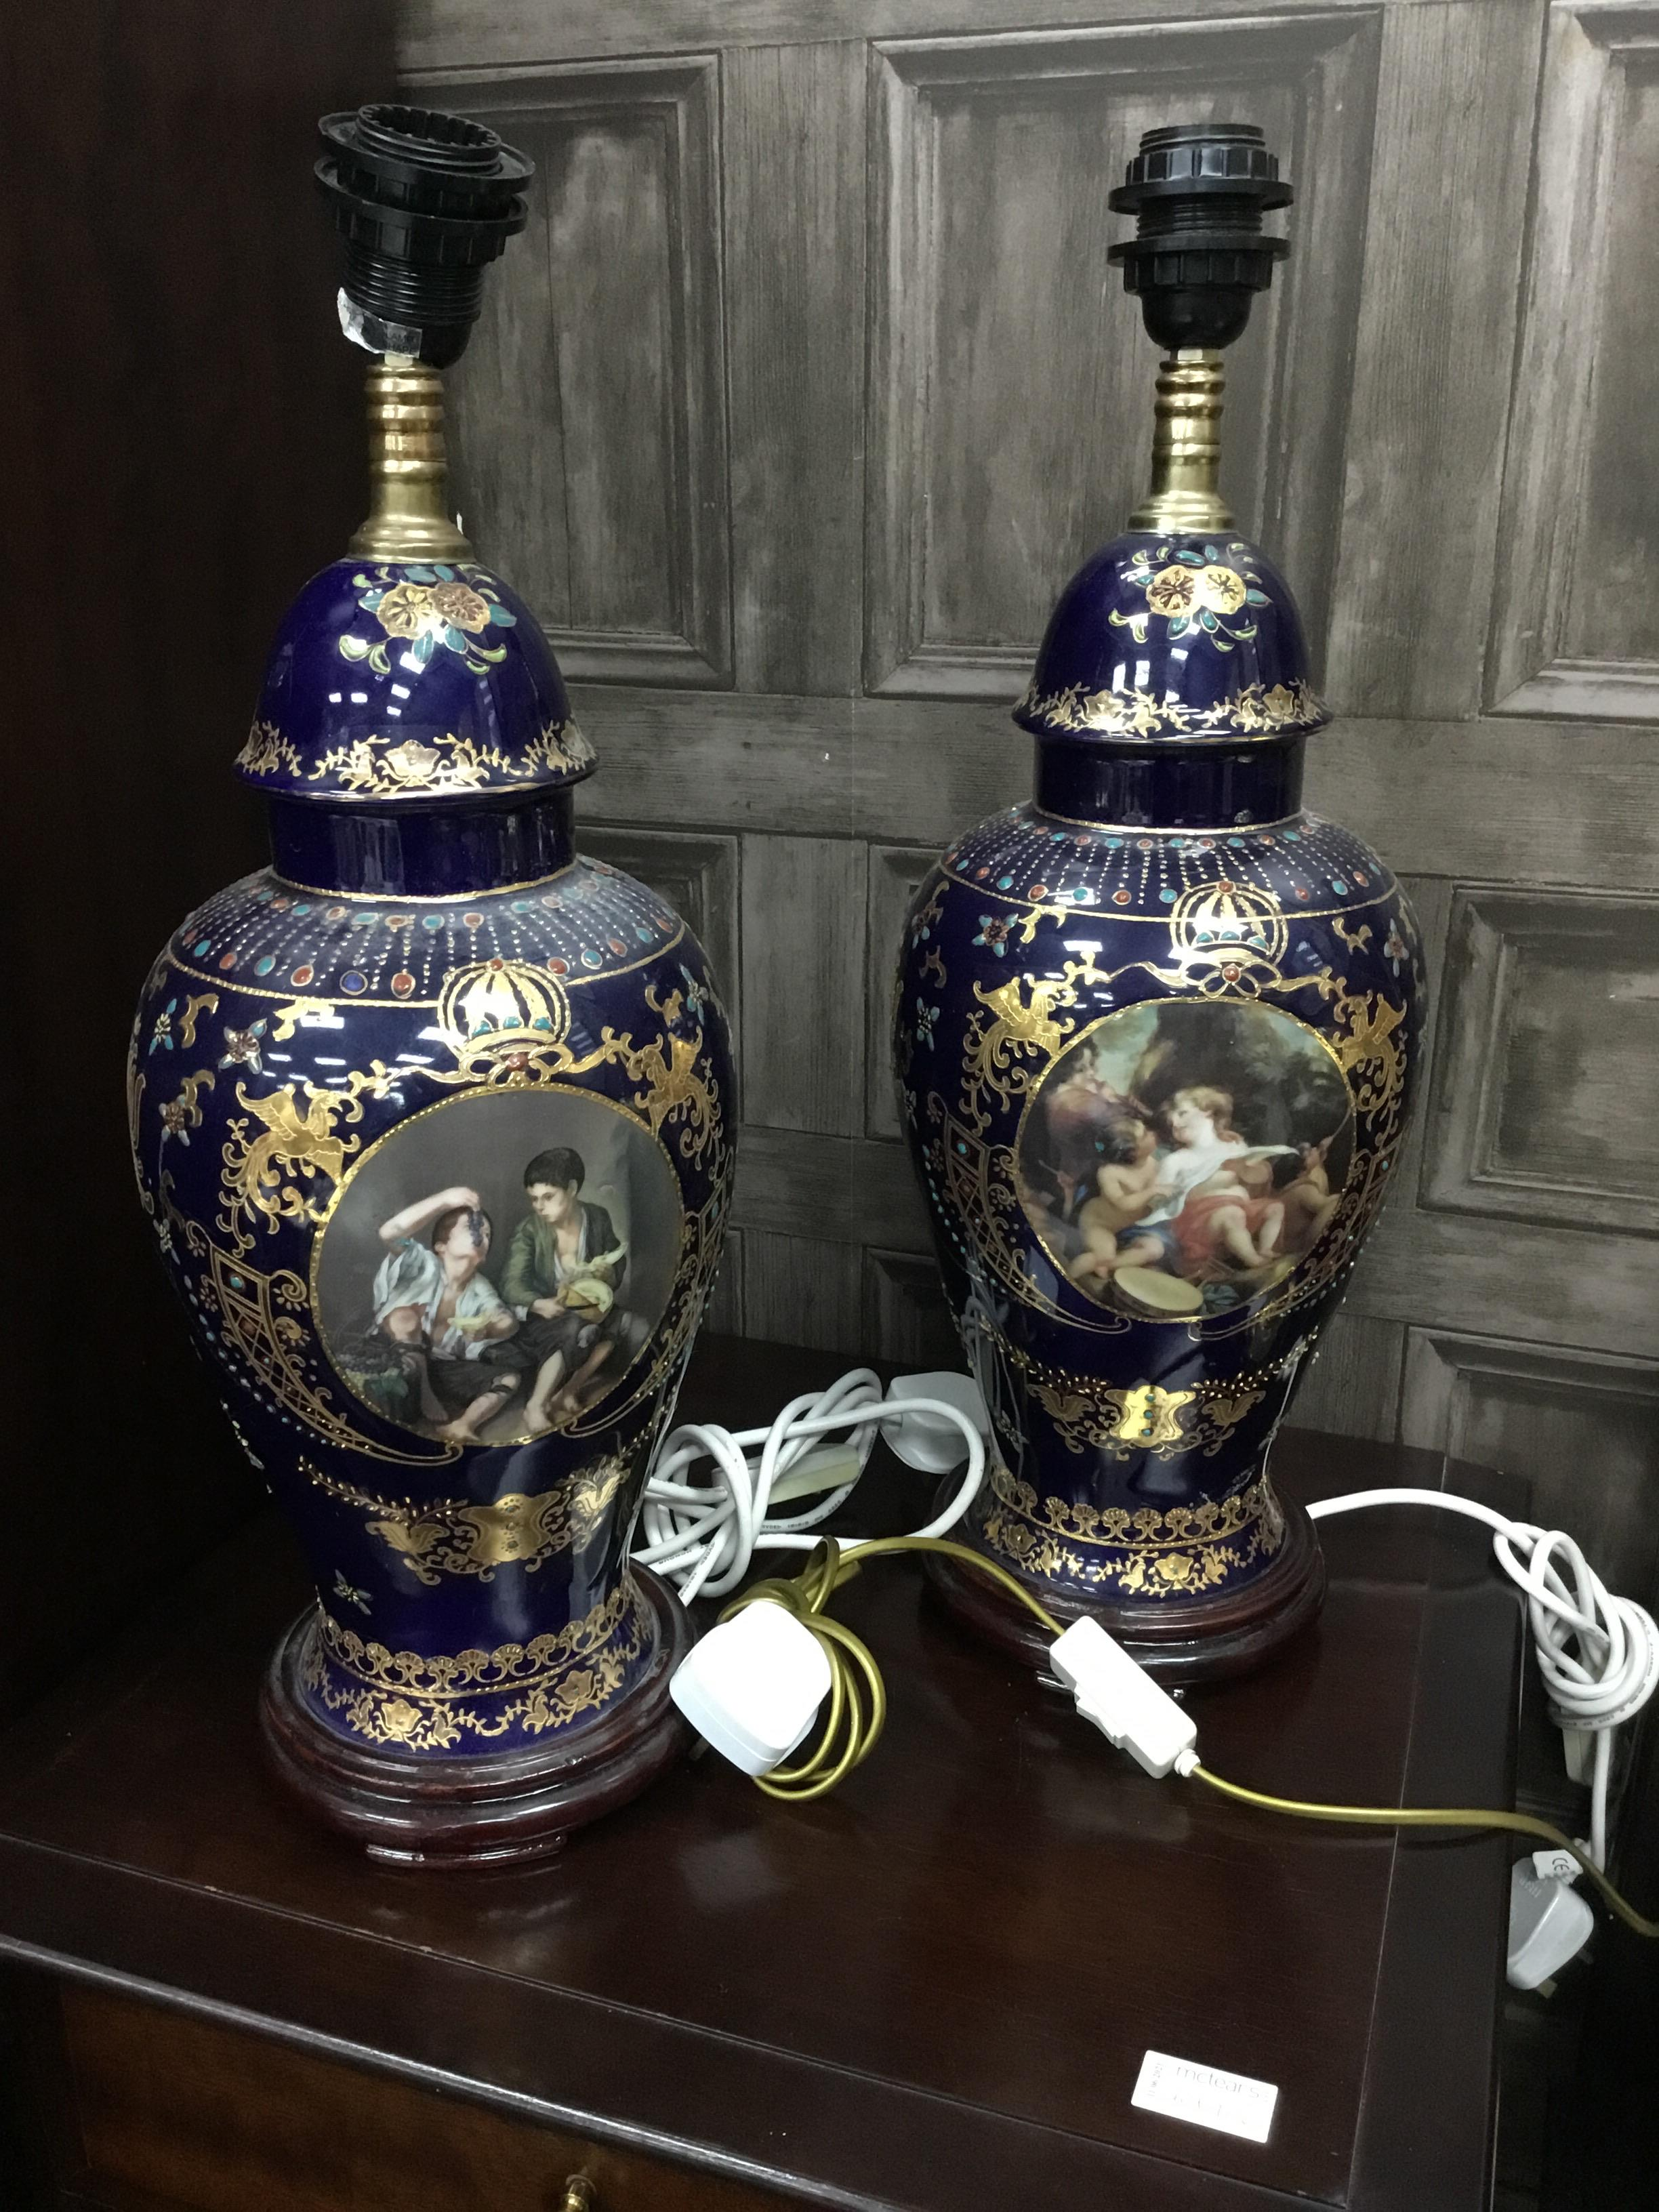 A BRASS TABLE LAMP AND A PAIR OF CONTINENTAL VIENNA STYLE TABLE LAMPS WITH SHADES - Image 2 of 2